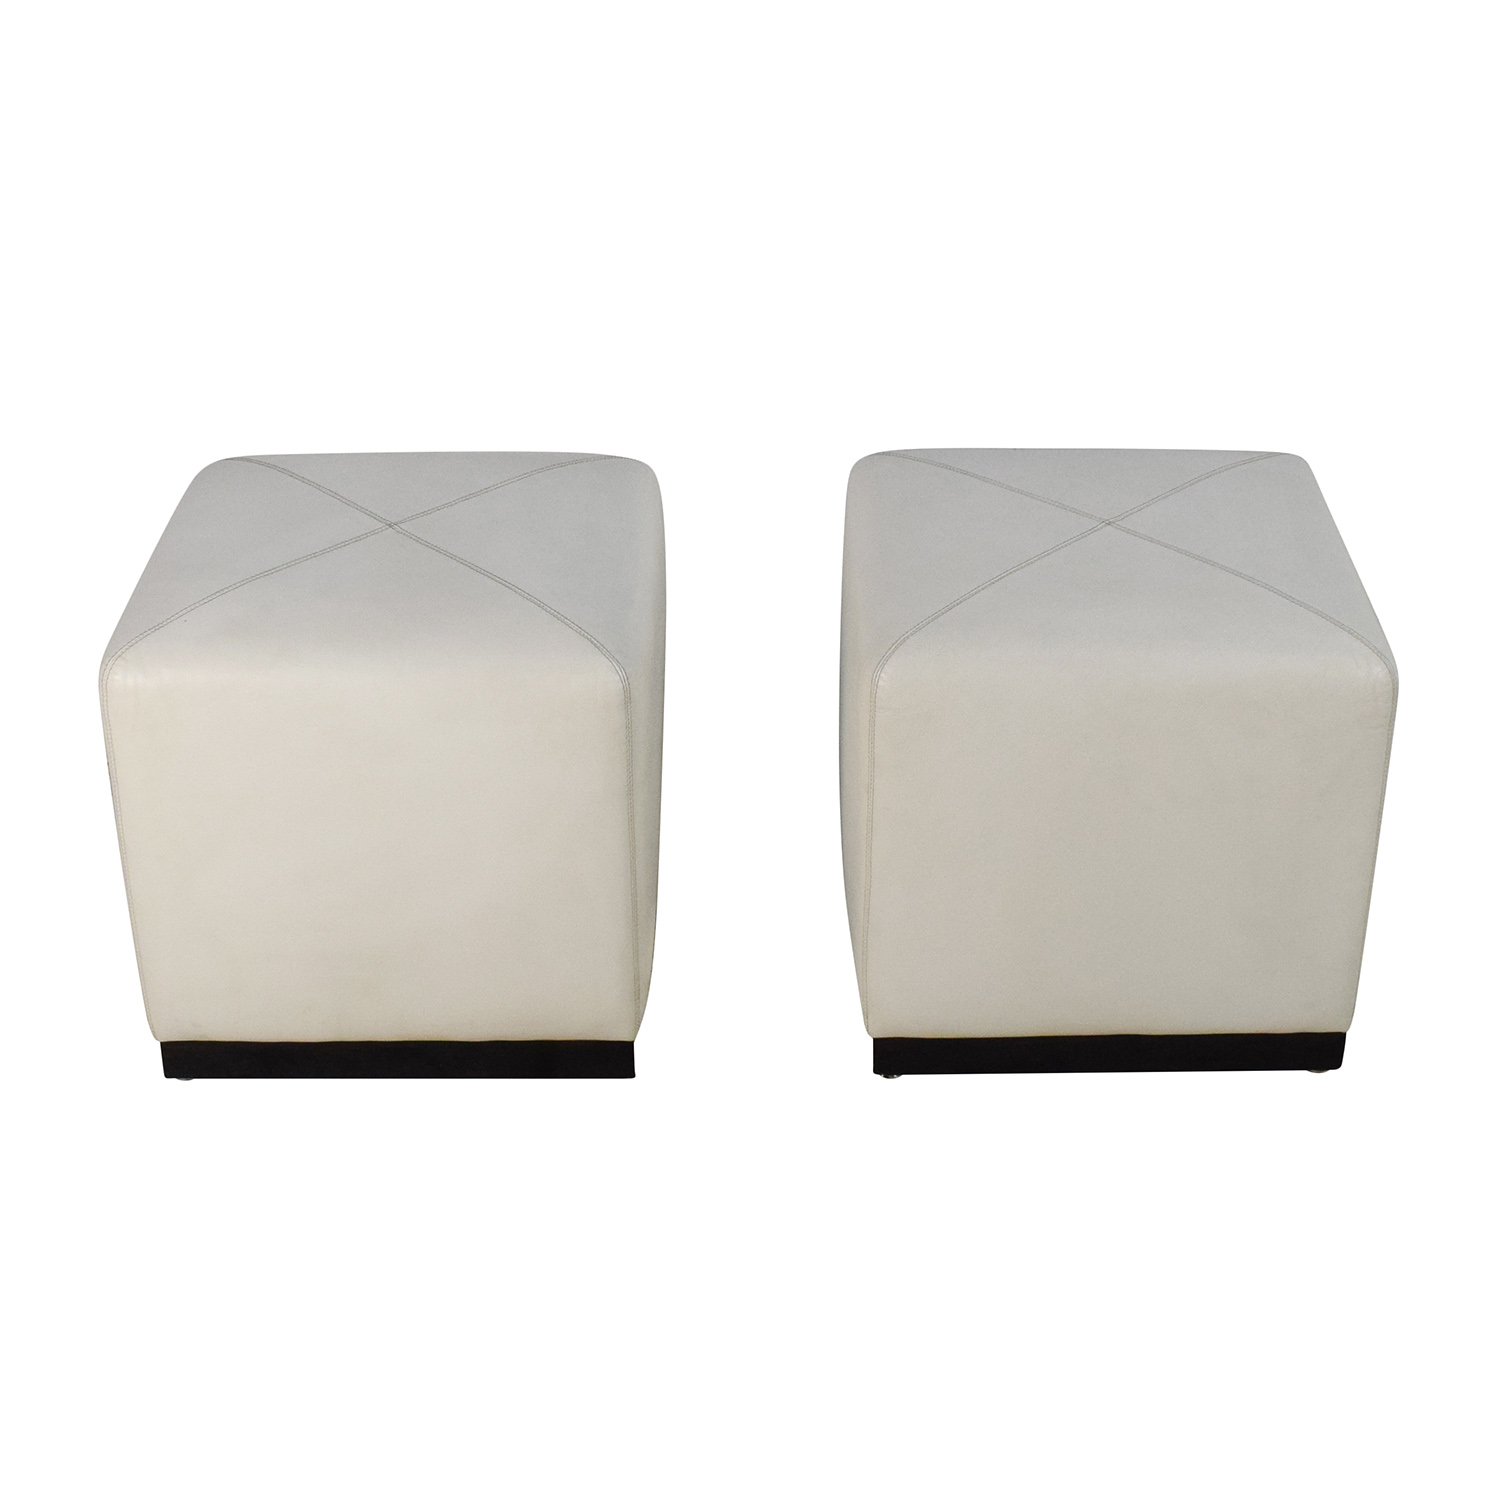 Pair of White Leather Ottoman Cubes Storage - 90% OFF - Large Klismos Leather And Wood Ottoman / Storage